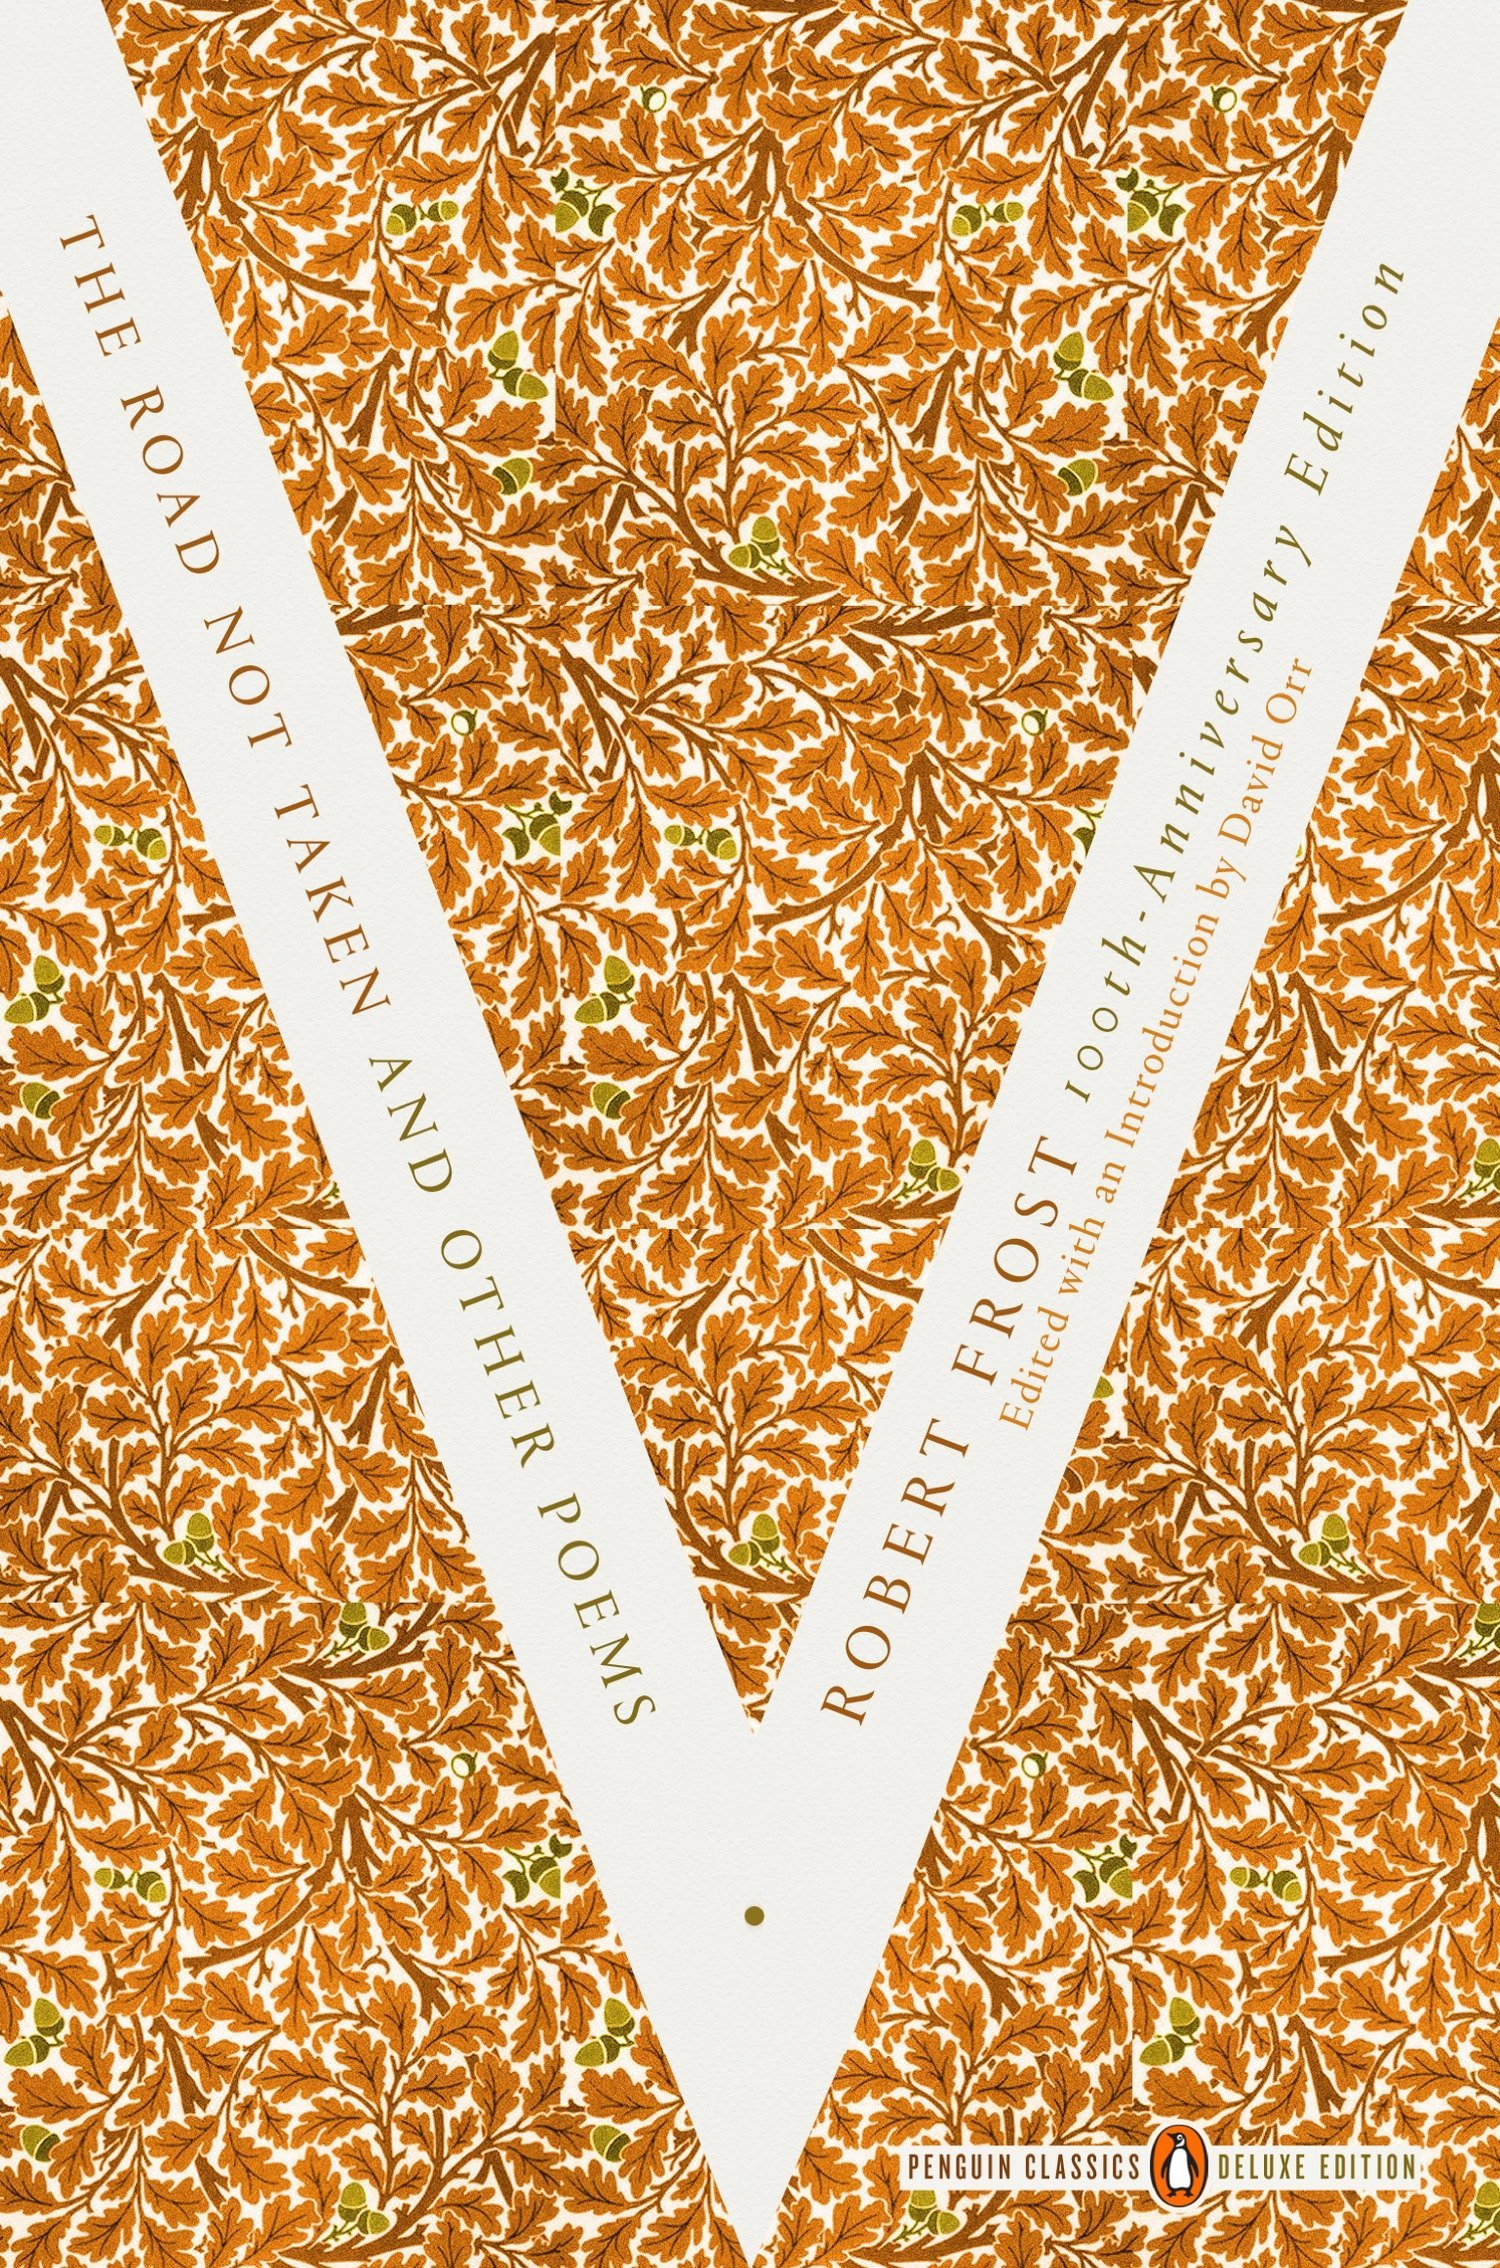 The Road Not Taken And Other Poems   Penguin Classics Deluxe Edition